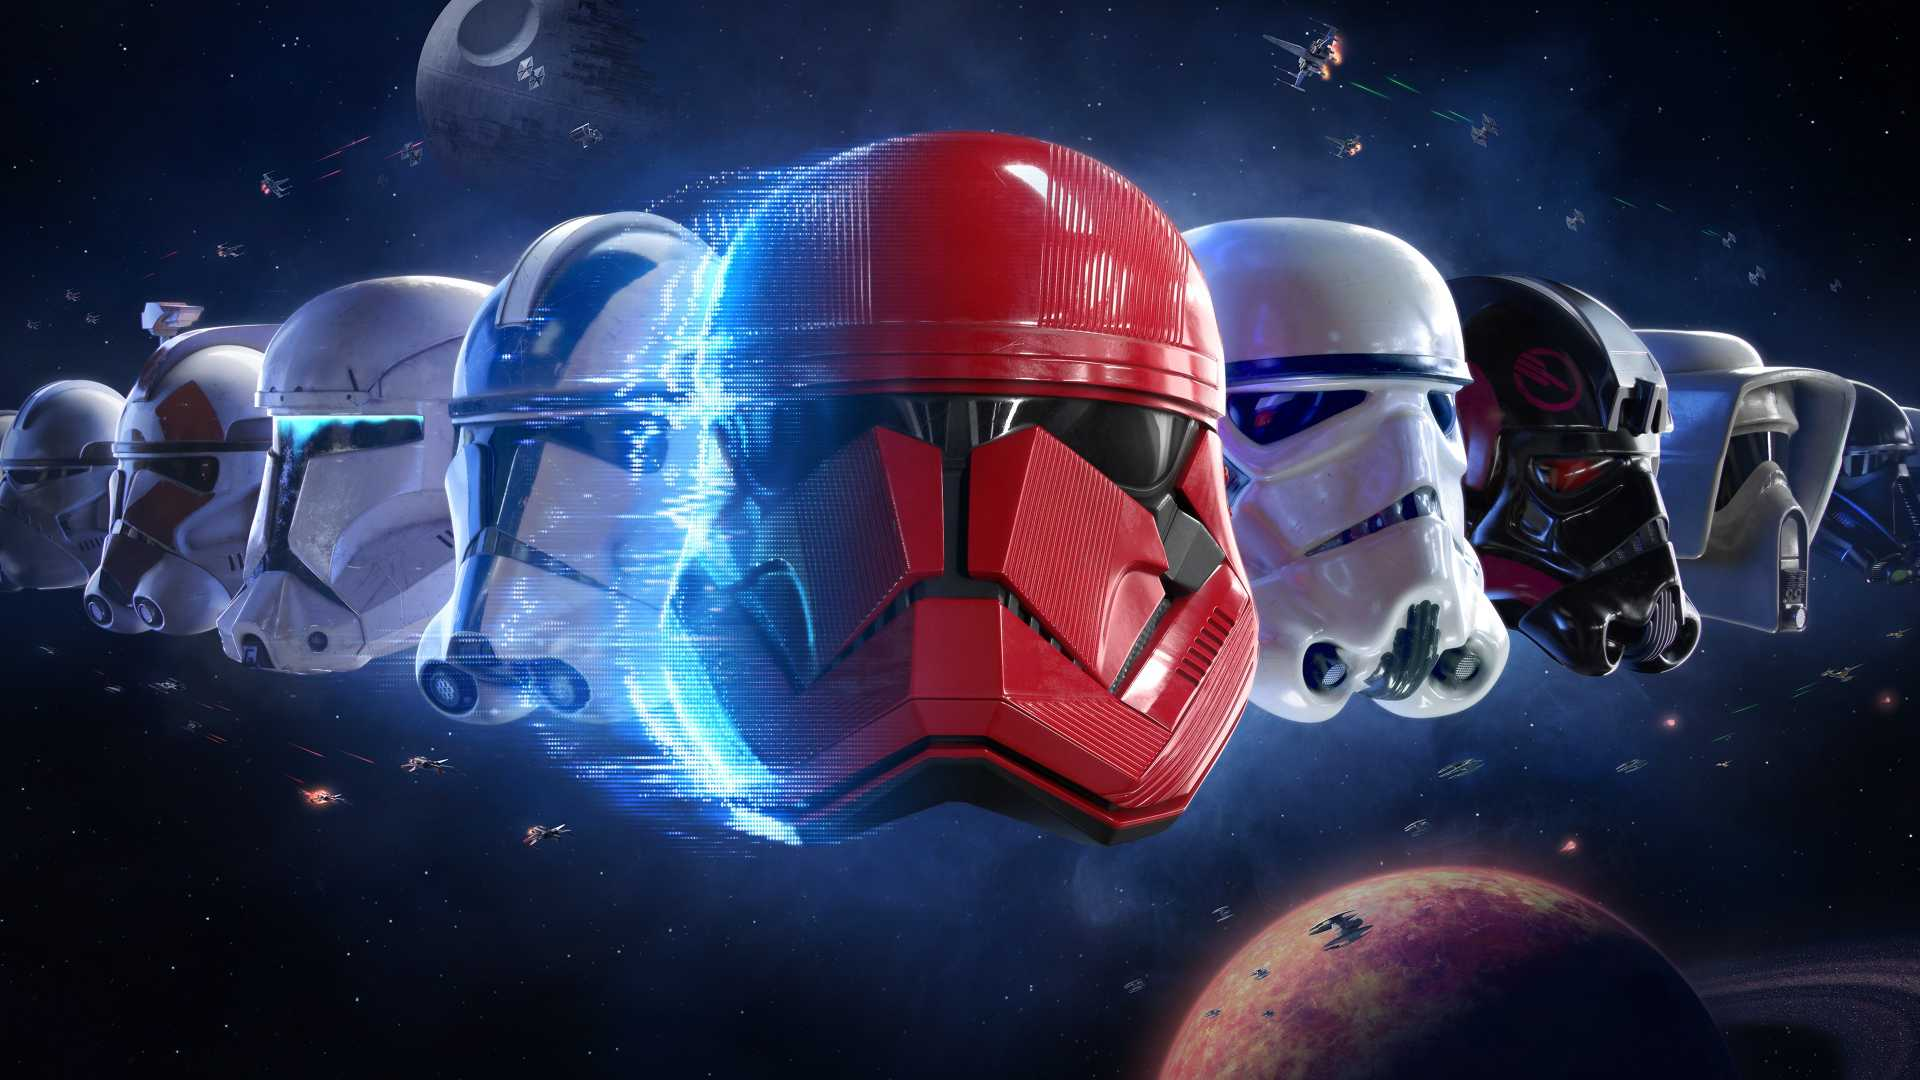 Sith Trooper Star Wars Battlefront Ii Cover Shape Your Computer Beautifully